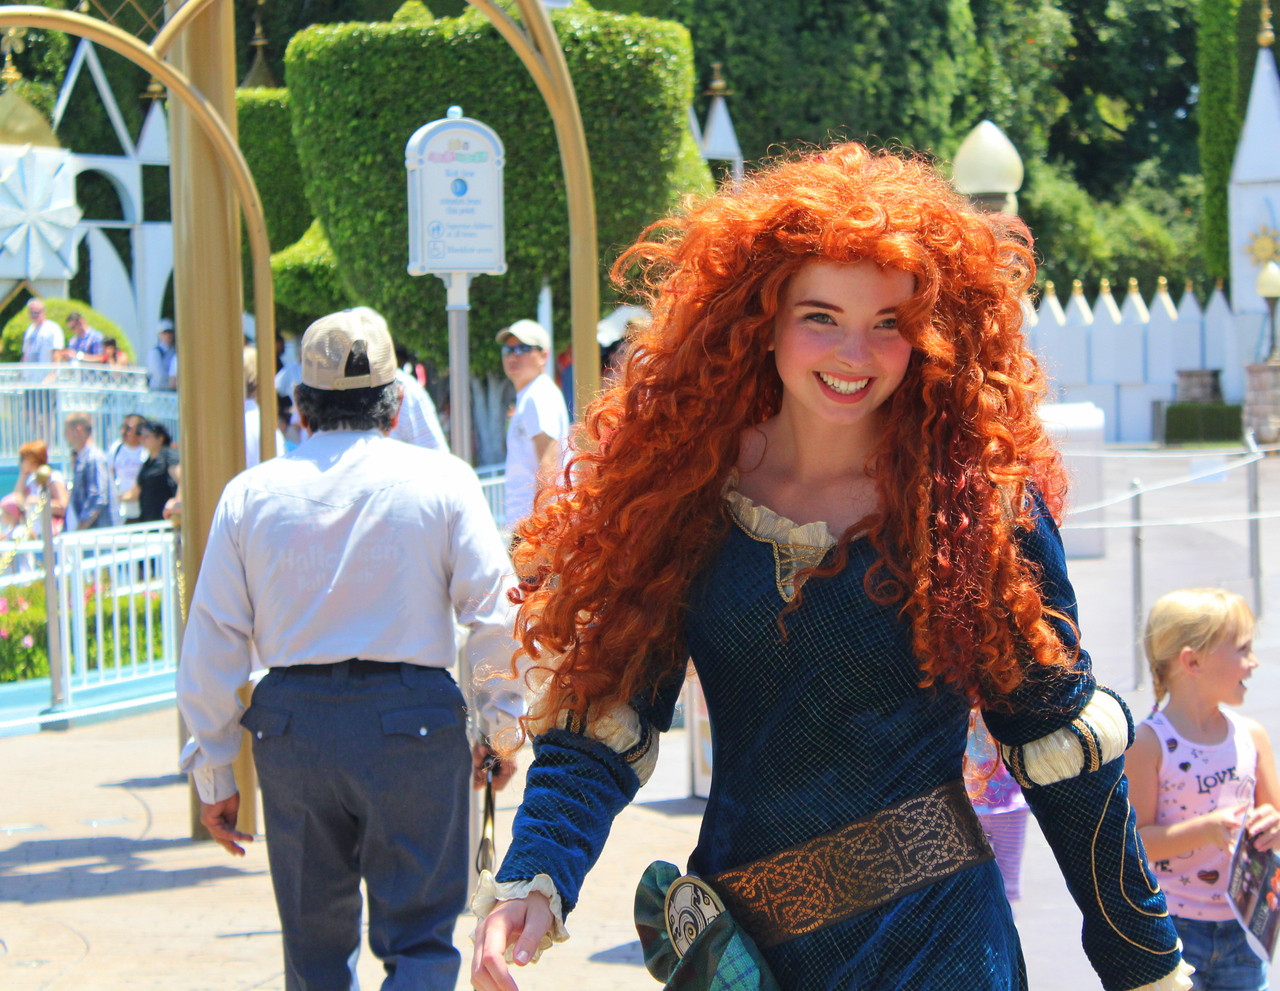 brave-disney-cosplay-curly-hair-spiffy-board